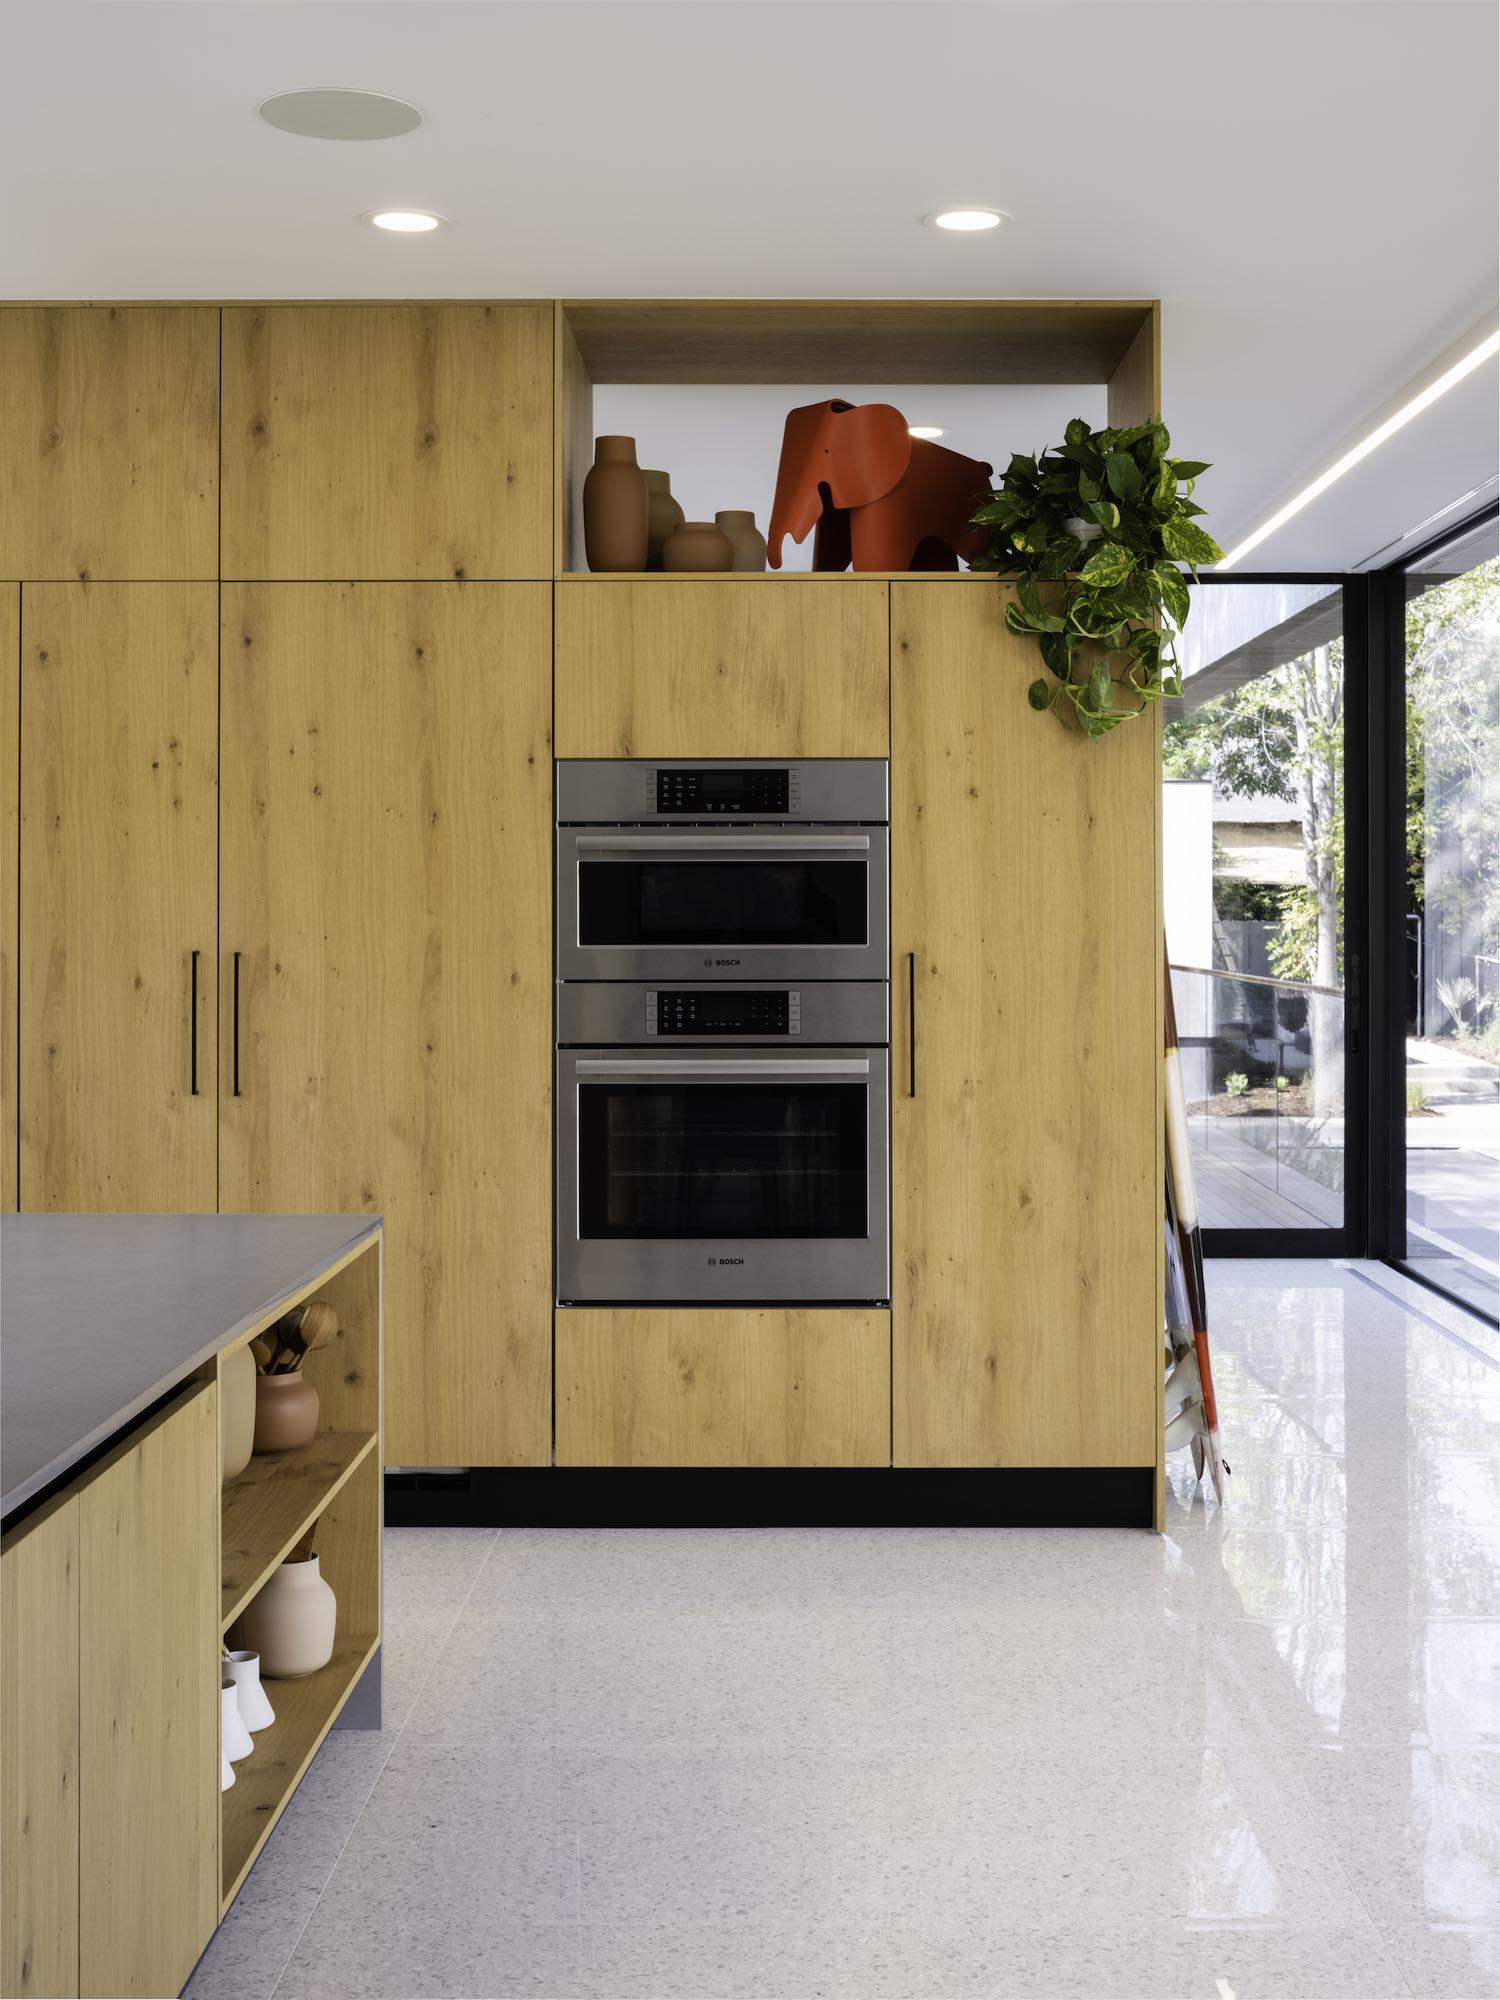 kitchen with microwave and oven